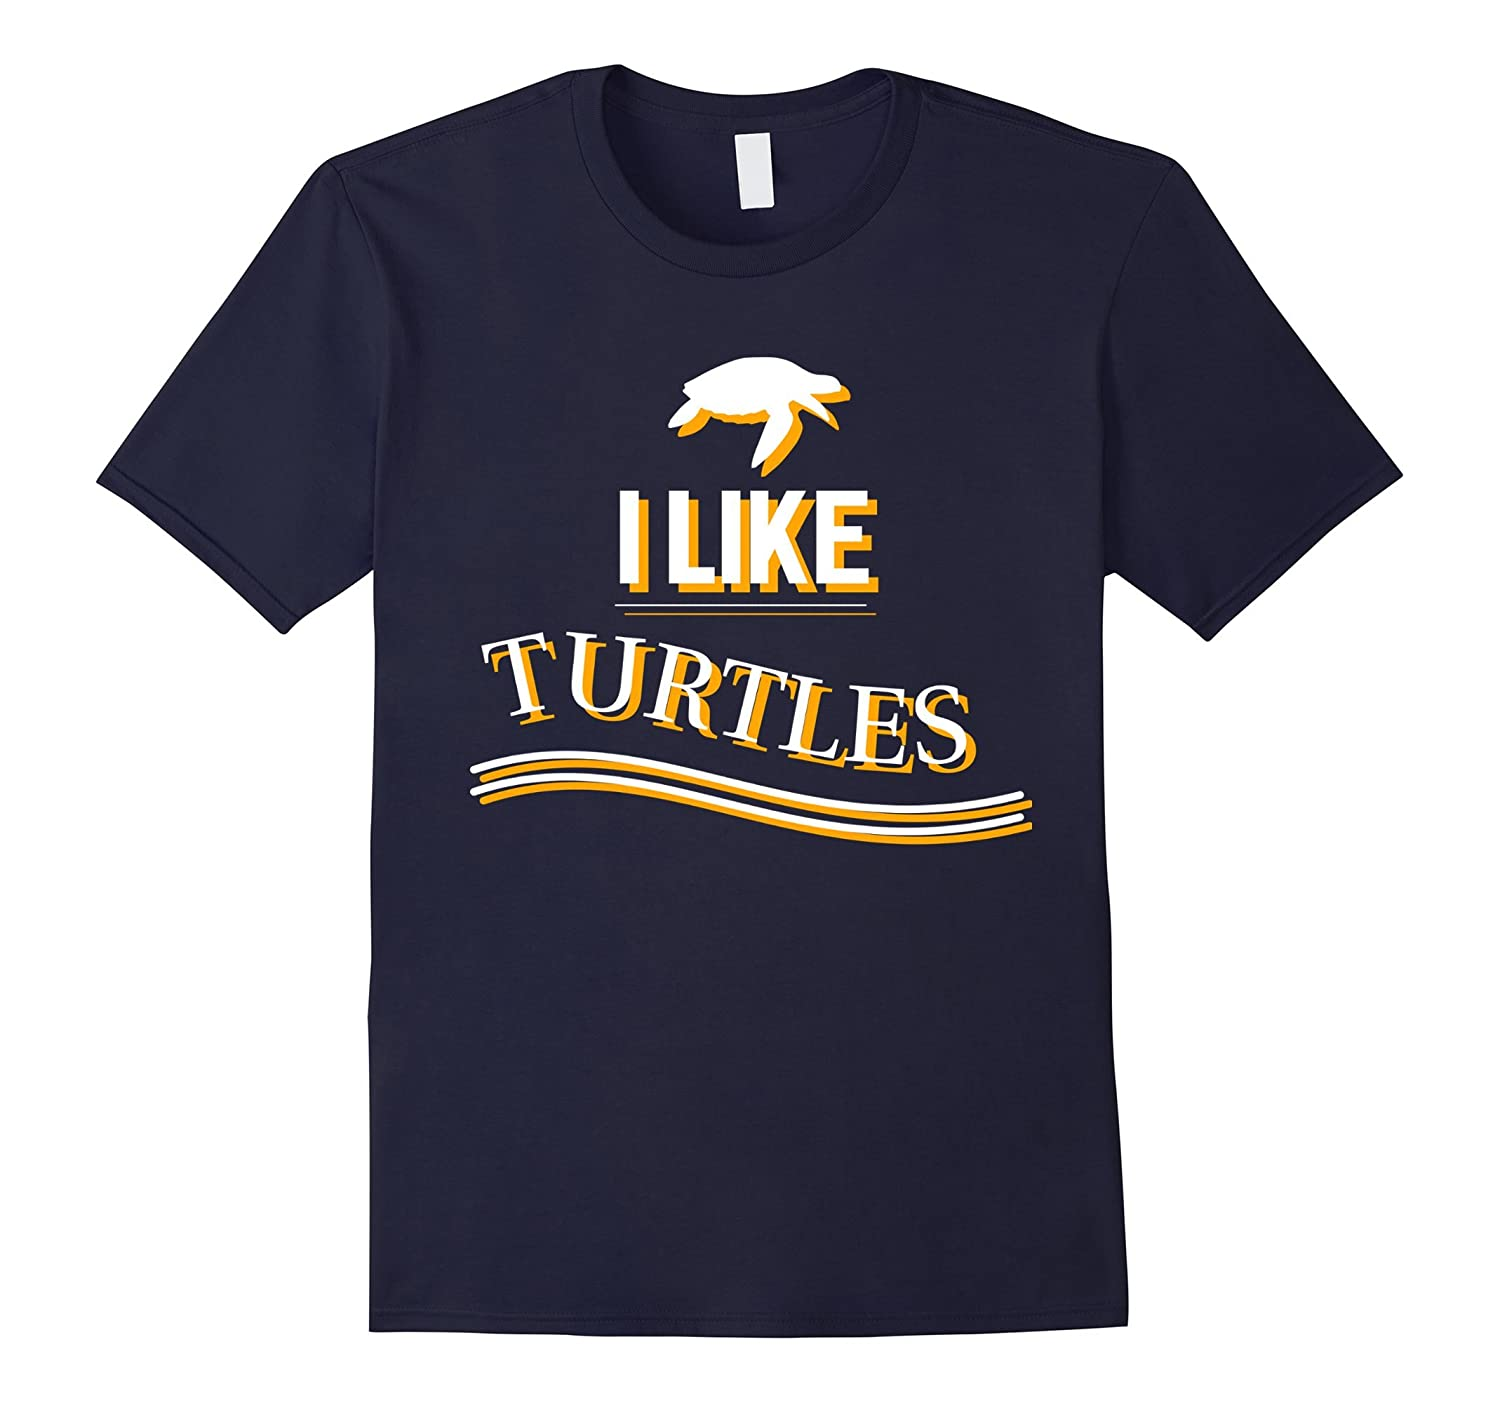 Funny shirt I Like Turtles-CL